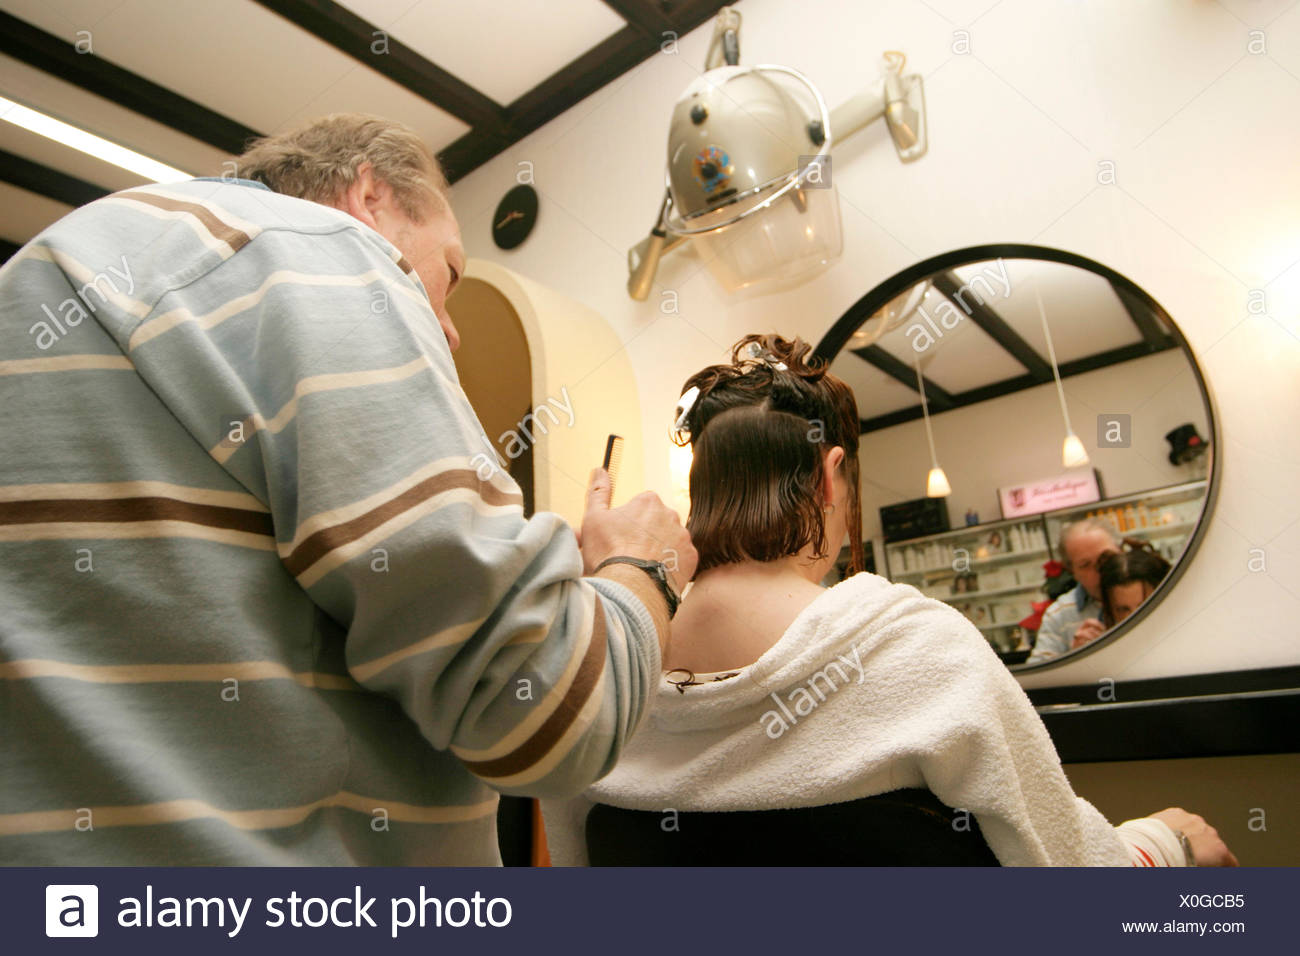 hairdresser cutting the hairs of a woman - Stock Image